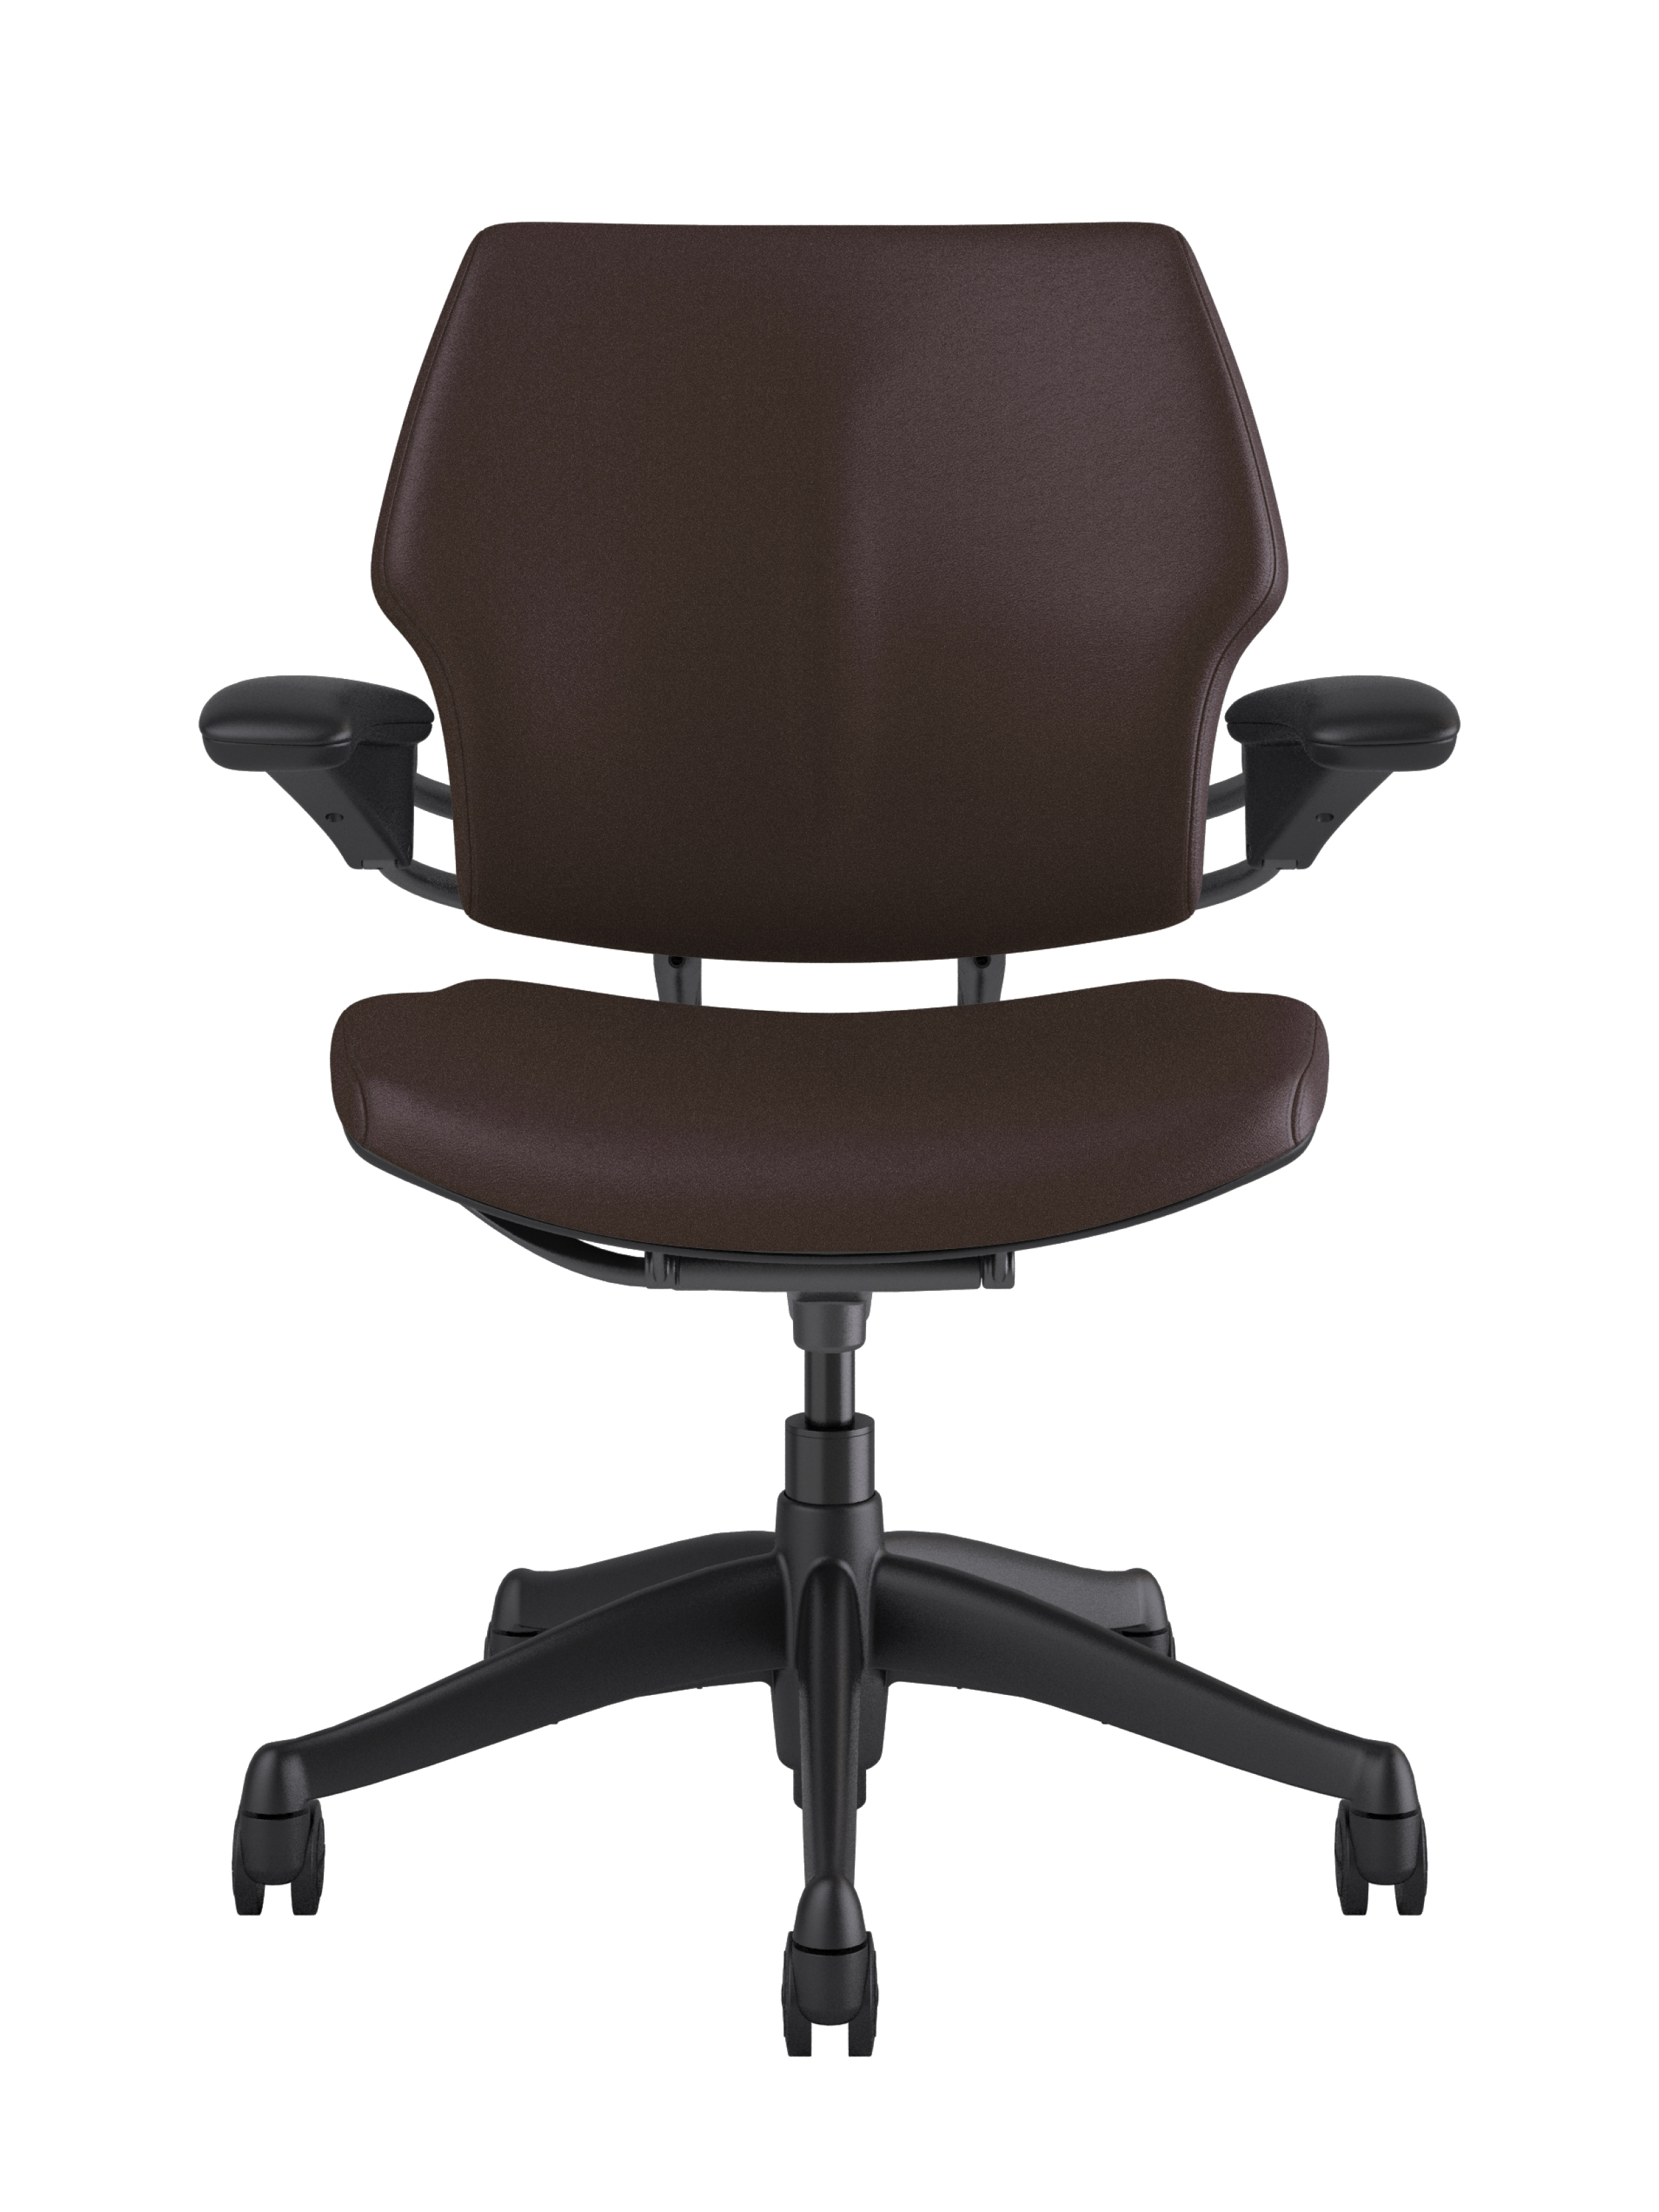 *New* Custom Humanscale Freedom Task Chair in Leather - 10 Color Options